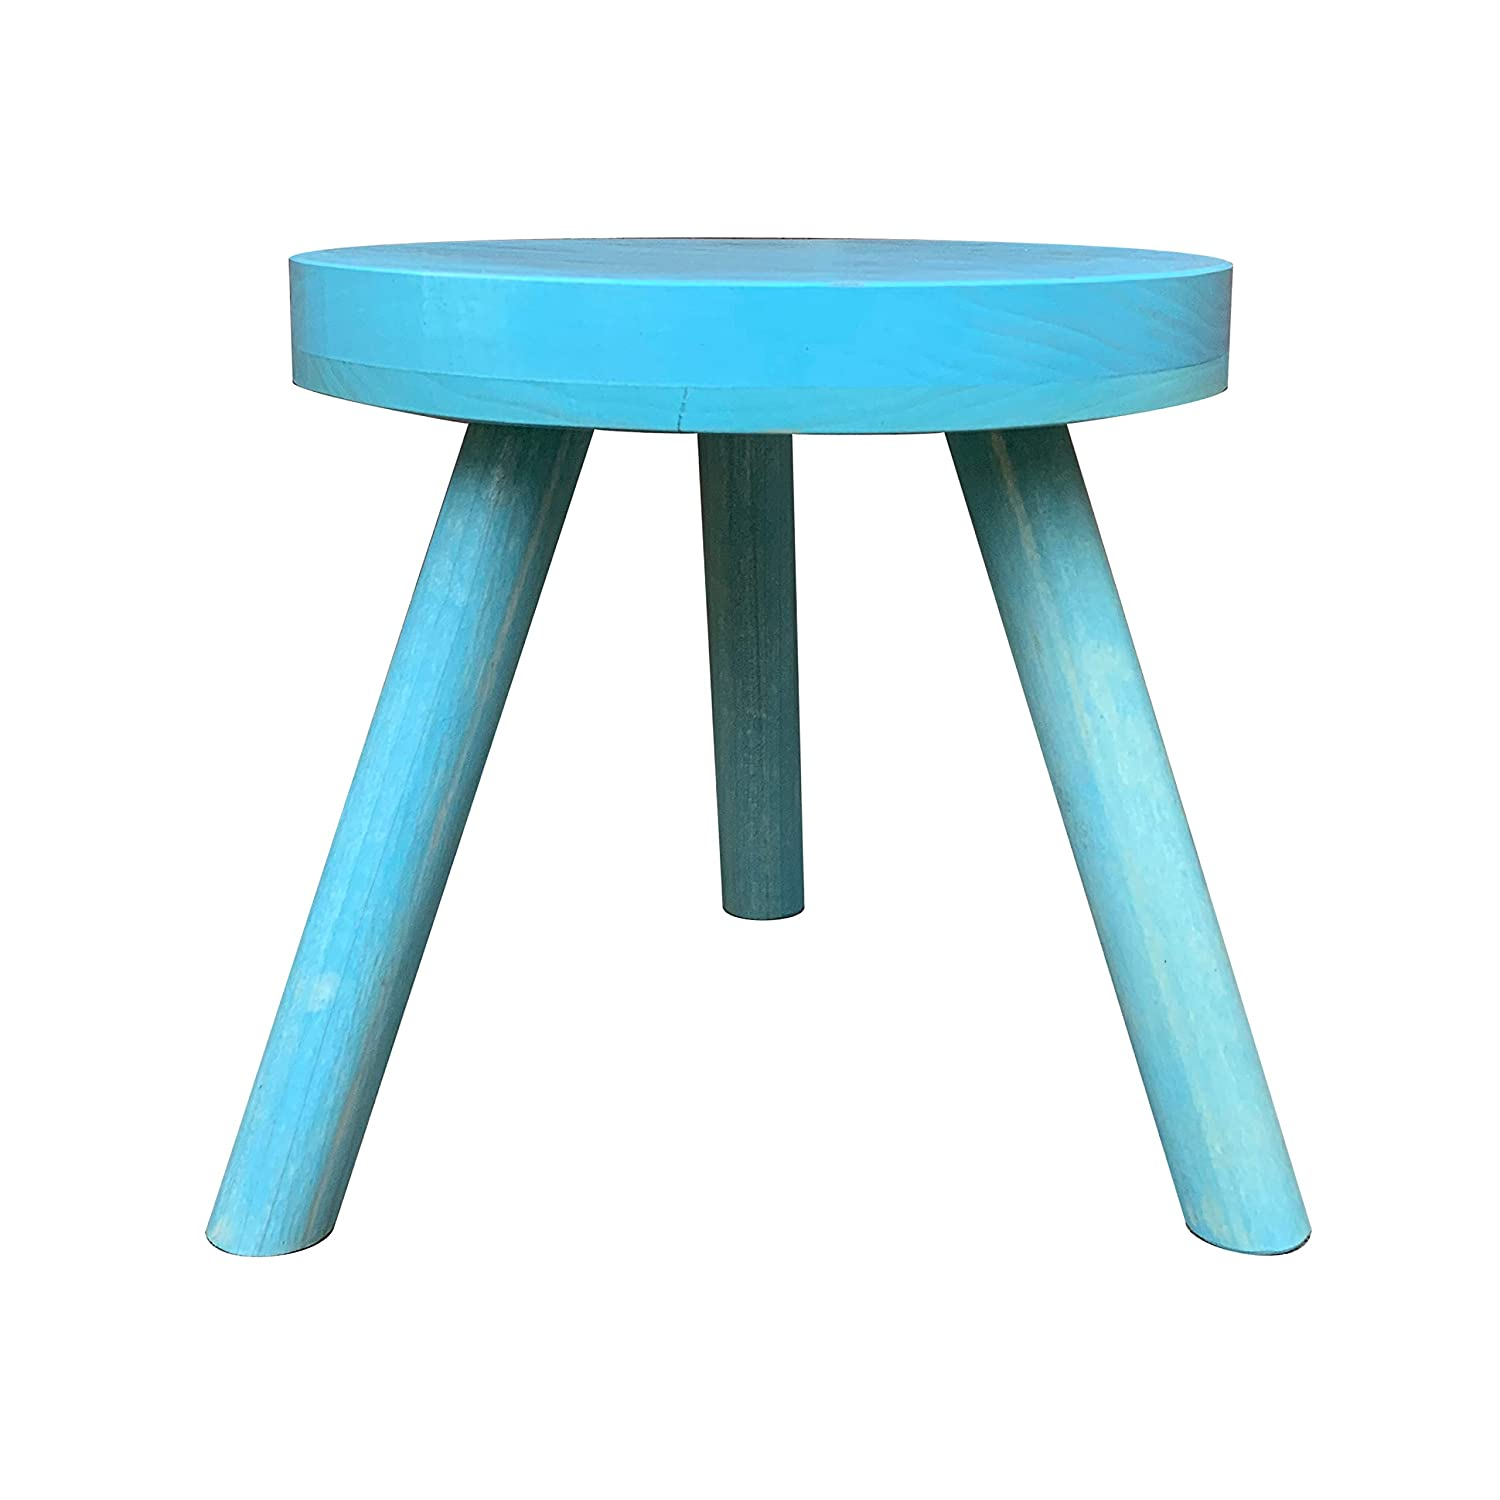 Cool Modern Plant Stand Three Leg Stool By Cw Furniture In Honey Indoor Flower Pot Base Display Holder Solid Wooden Kids Chair Table Simple Minimalist Gmtry Best Dining Table And Chair Ideas Images Gmtryco